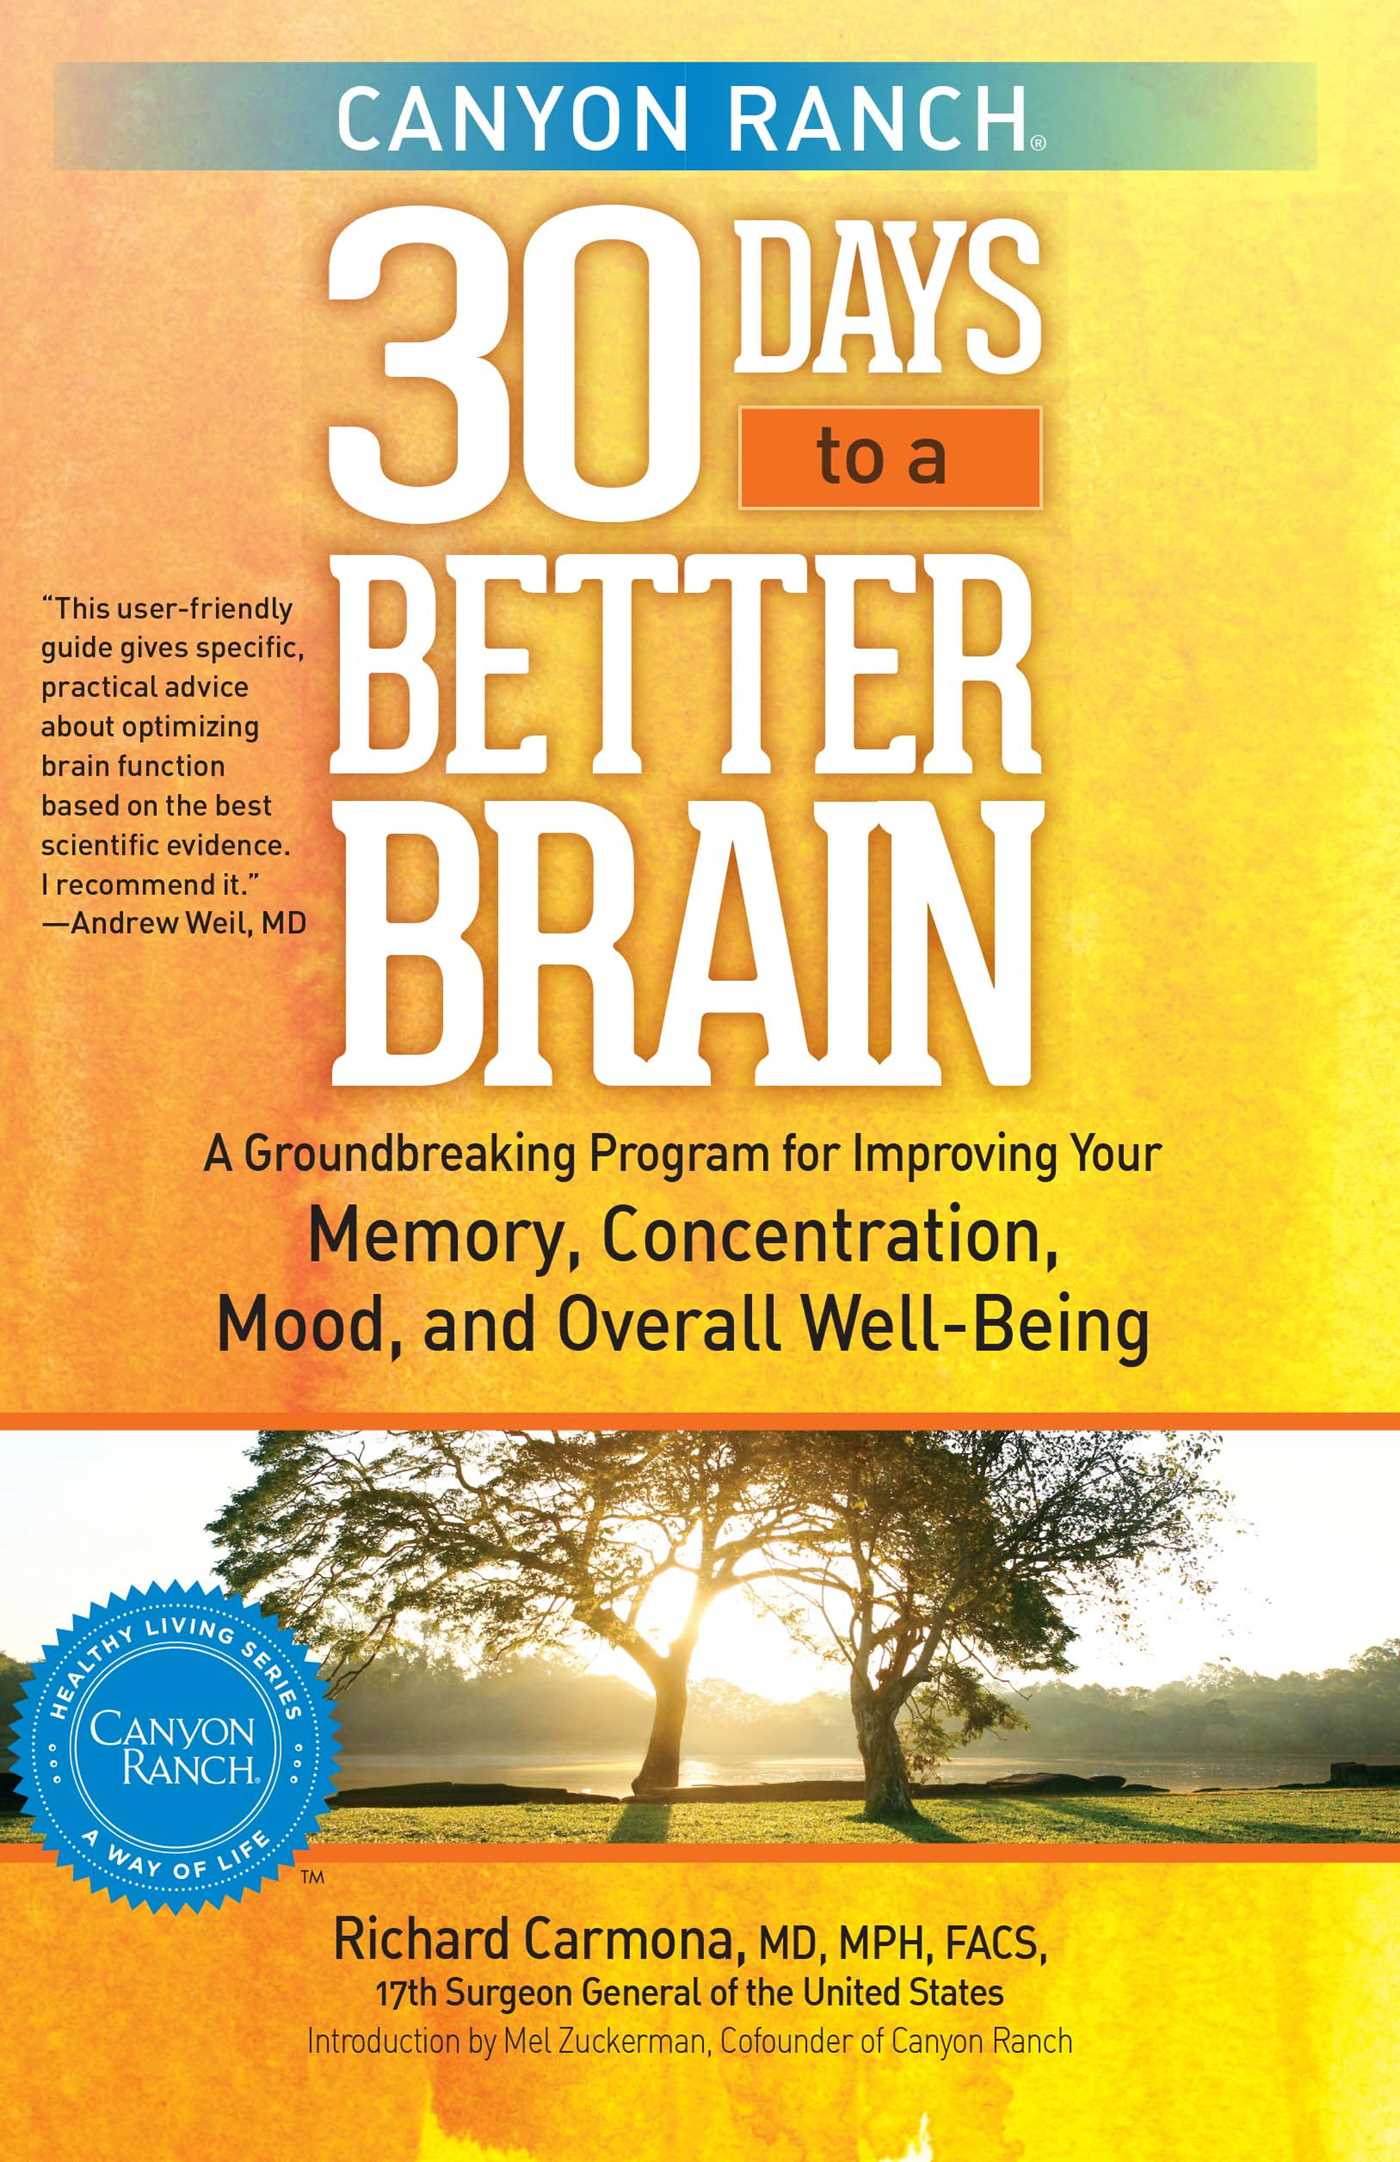 Canyon ranch 30 days to a better brain 9781451643817 hr